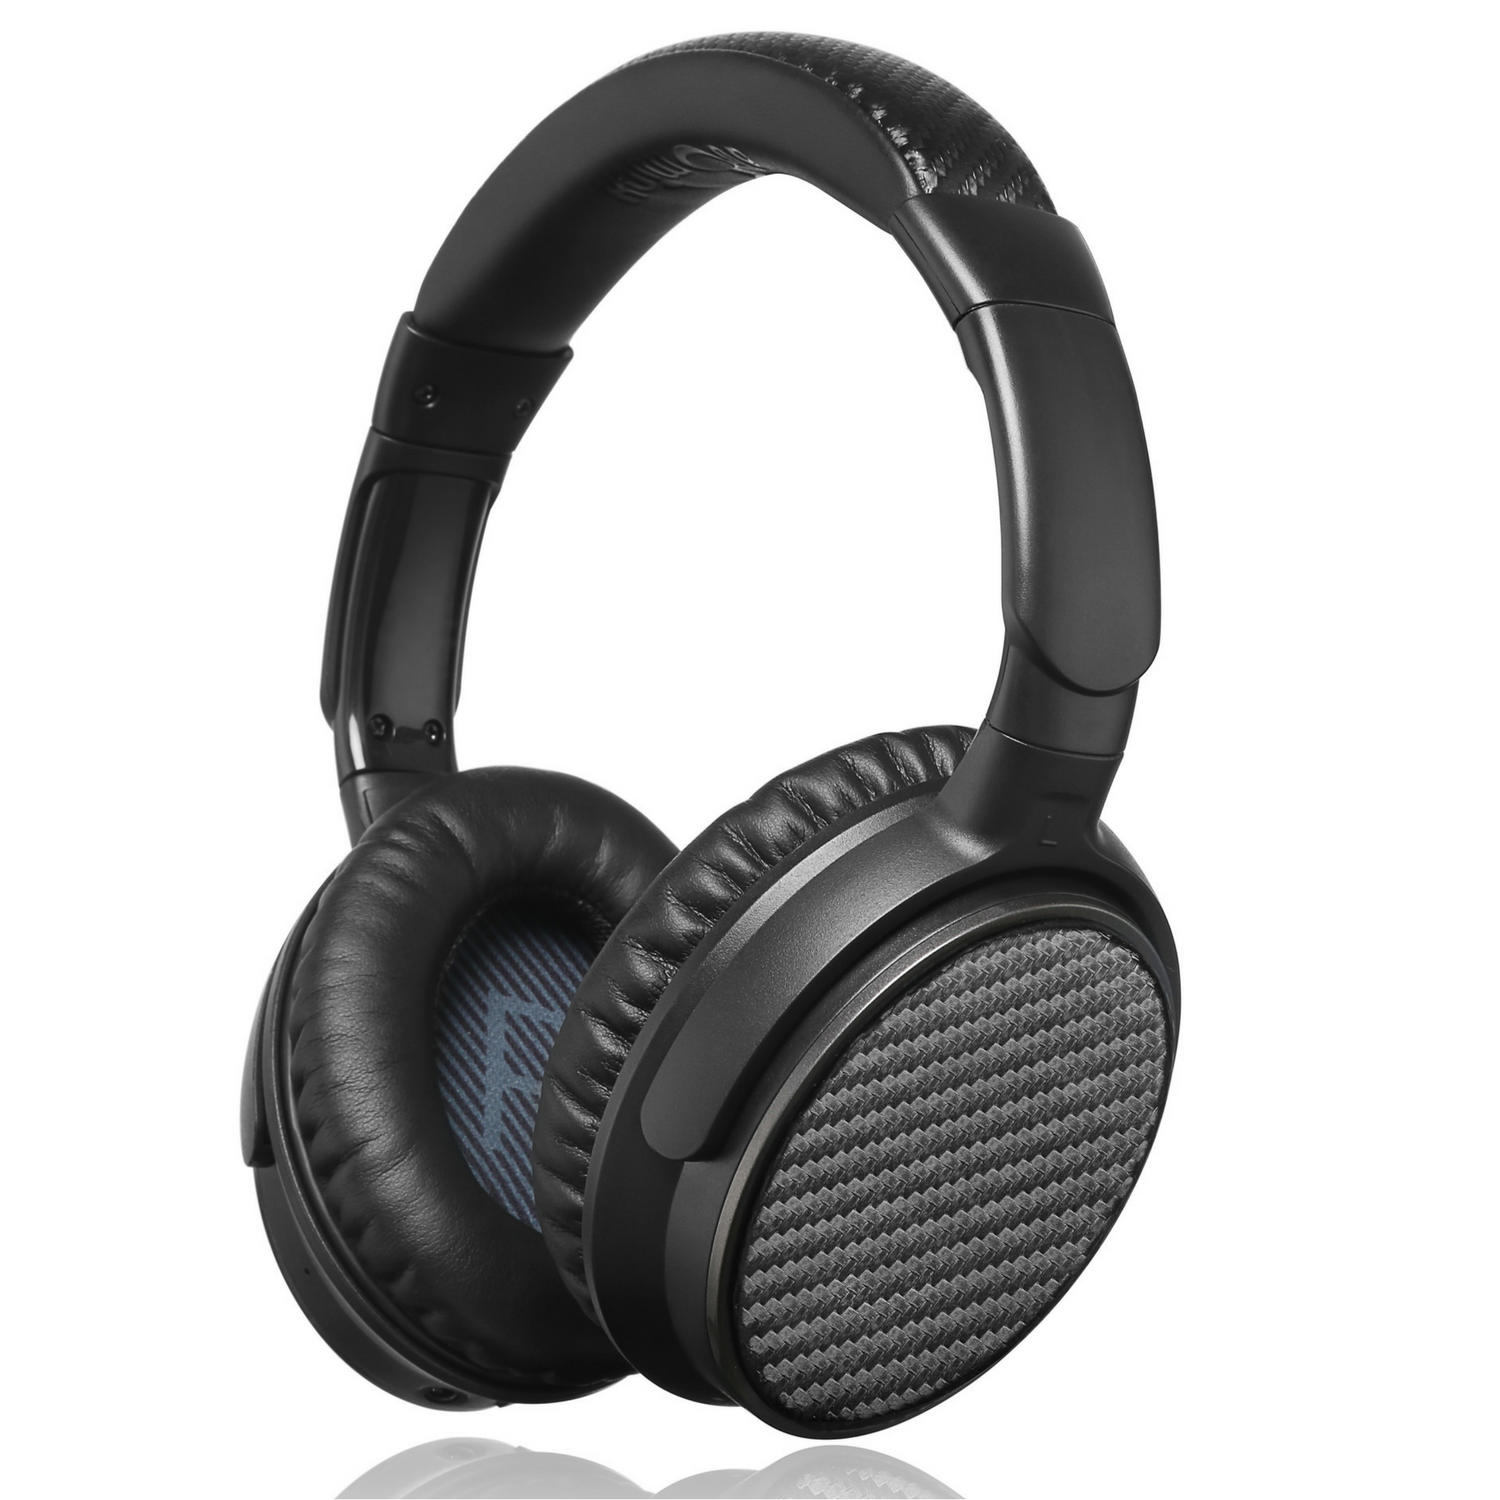 iDeaUSA Wireless Noise Canceling Bluetooth Headphones Over-Ear with Mic V201